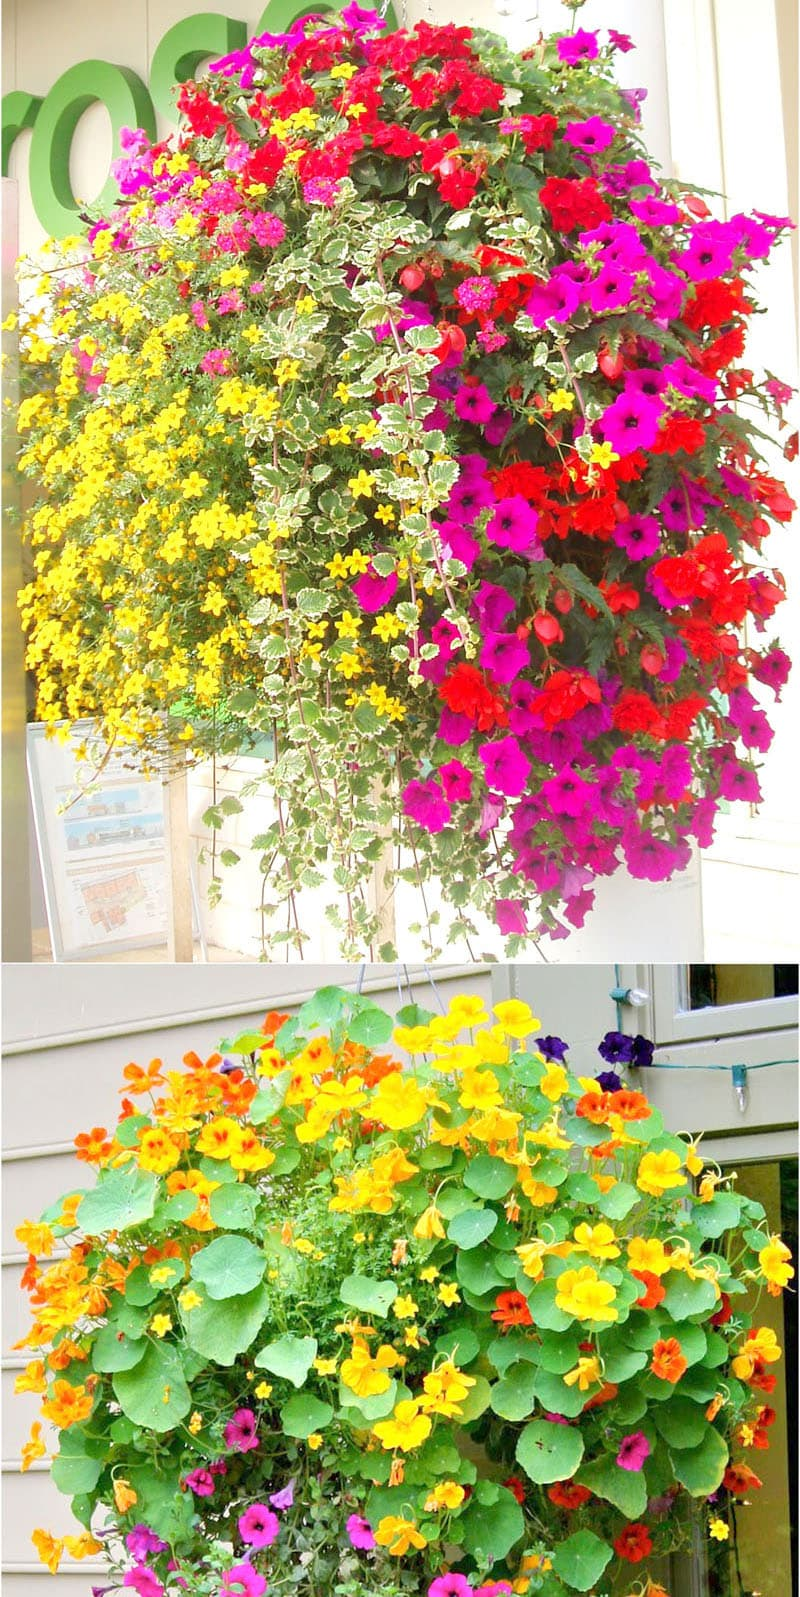 beautiful hanging baskets with yellow and pink flowers